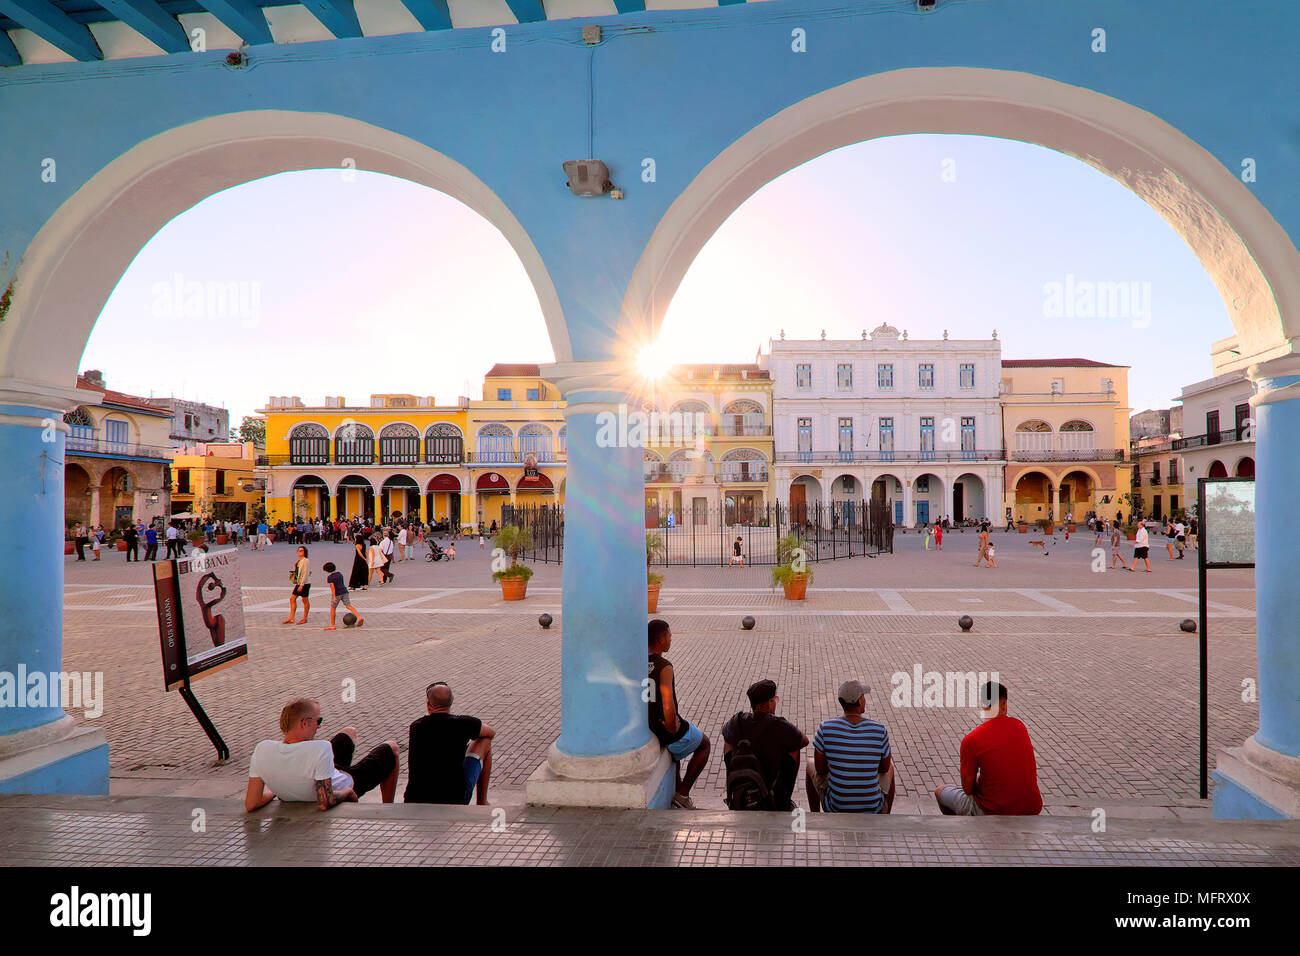 Sun setting over the colorful colonial buildings on Plaza Vieja / Old Square, Havana, Cuba - Stock Image